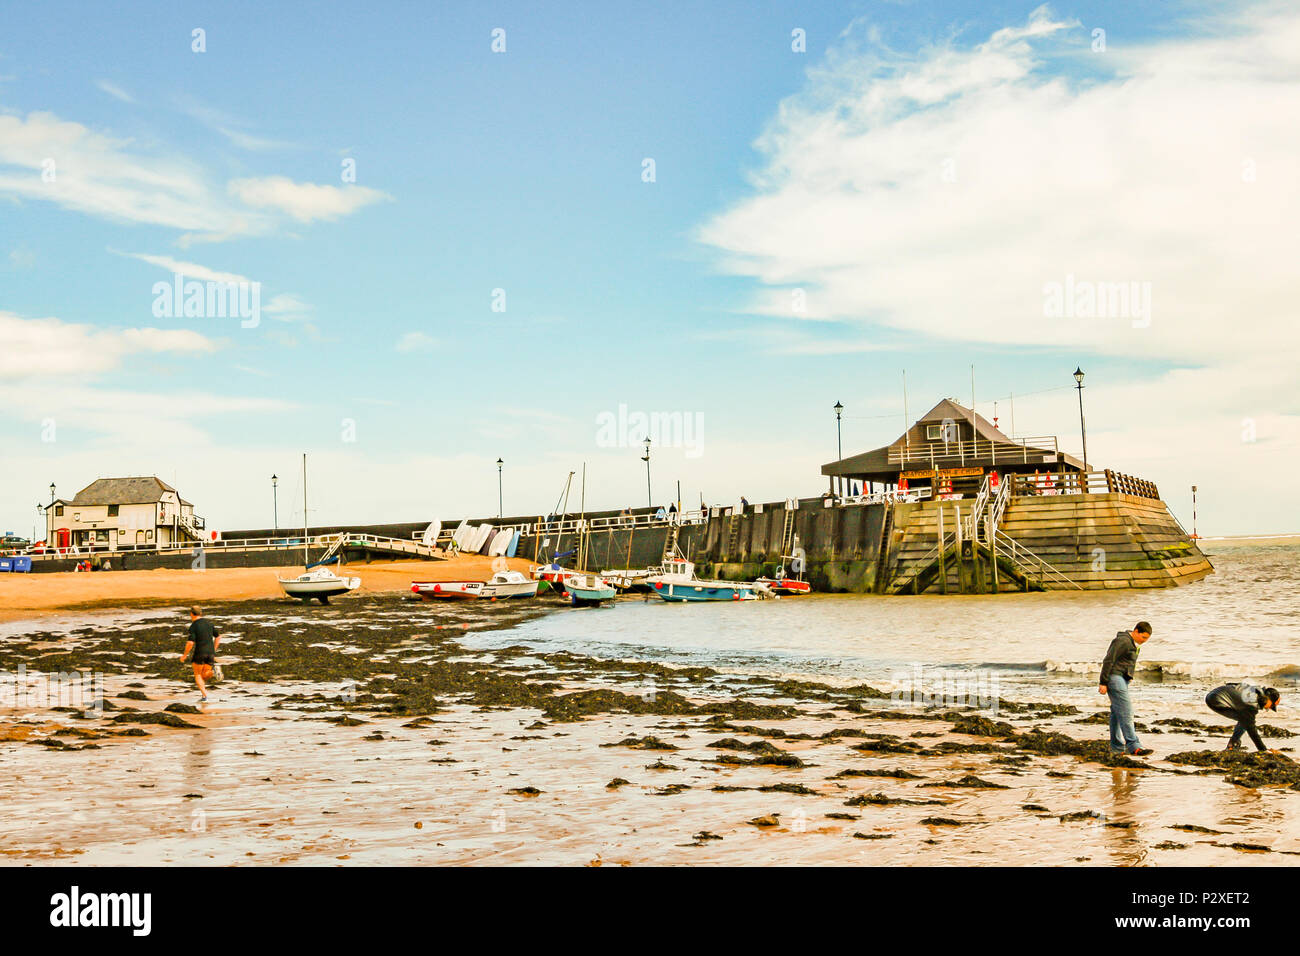 boys having fun on the water's edge on the beach at viking bay, broadstairs, kent, england Stock Photo